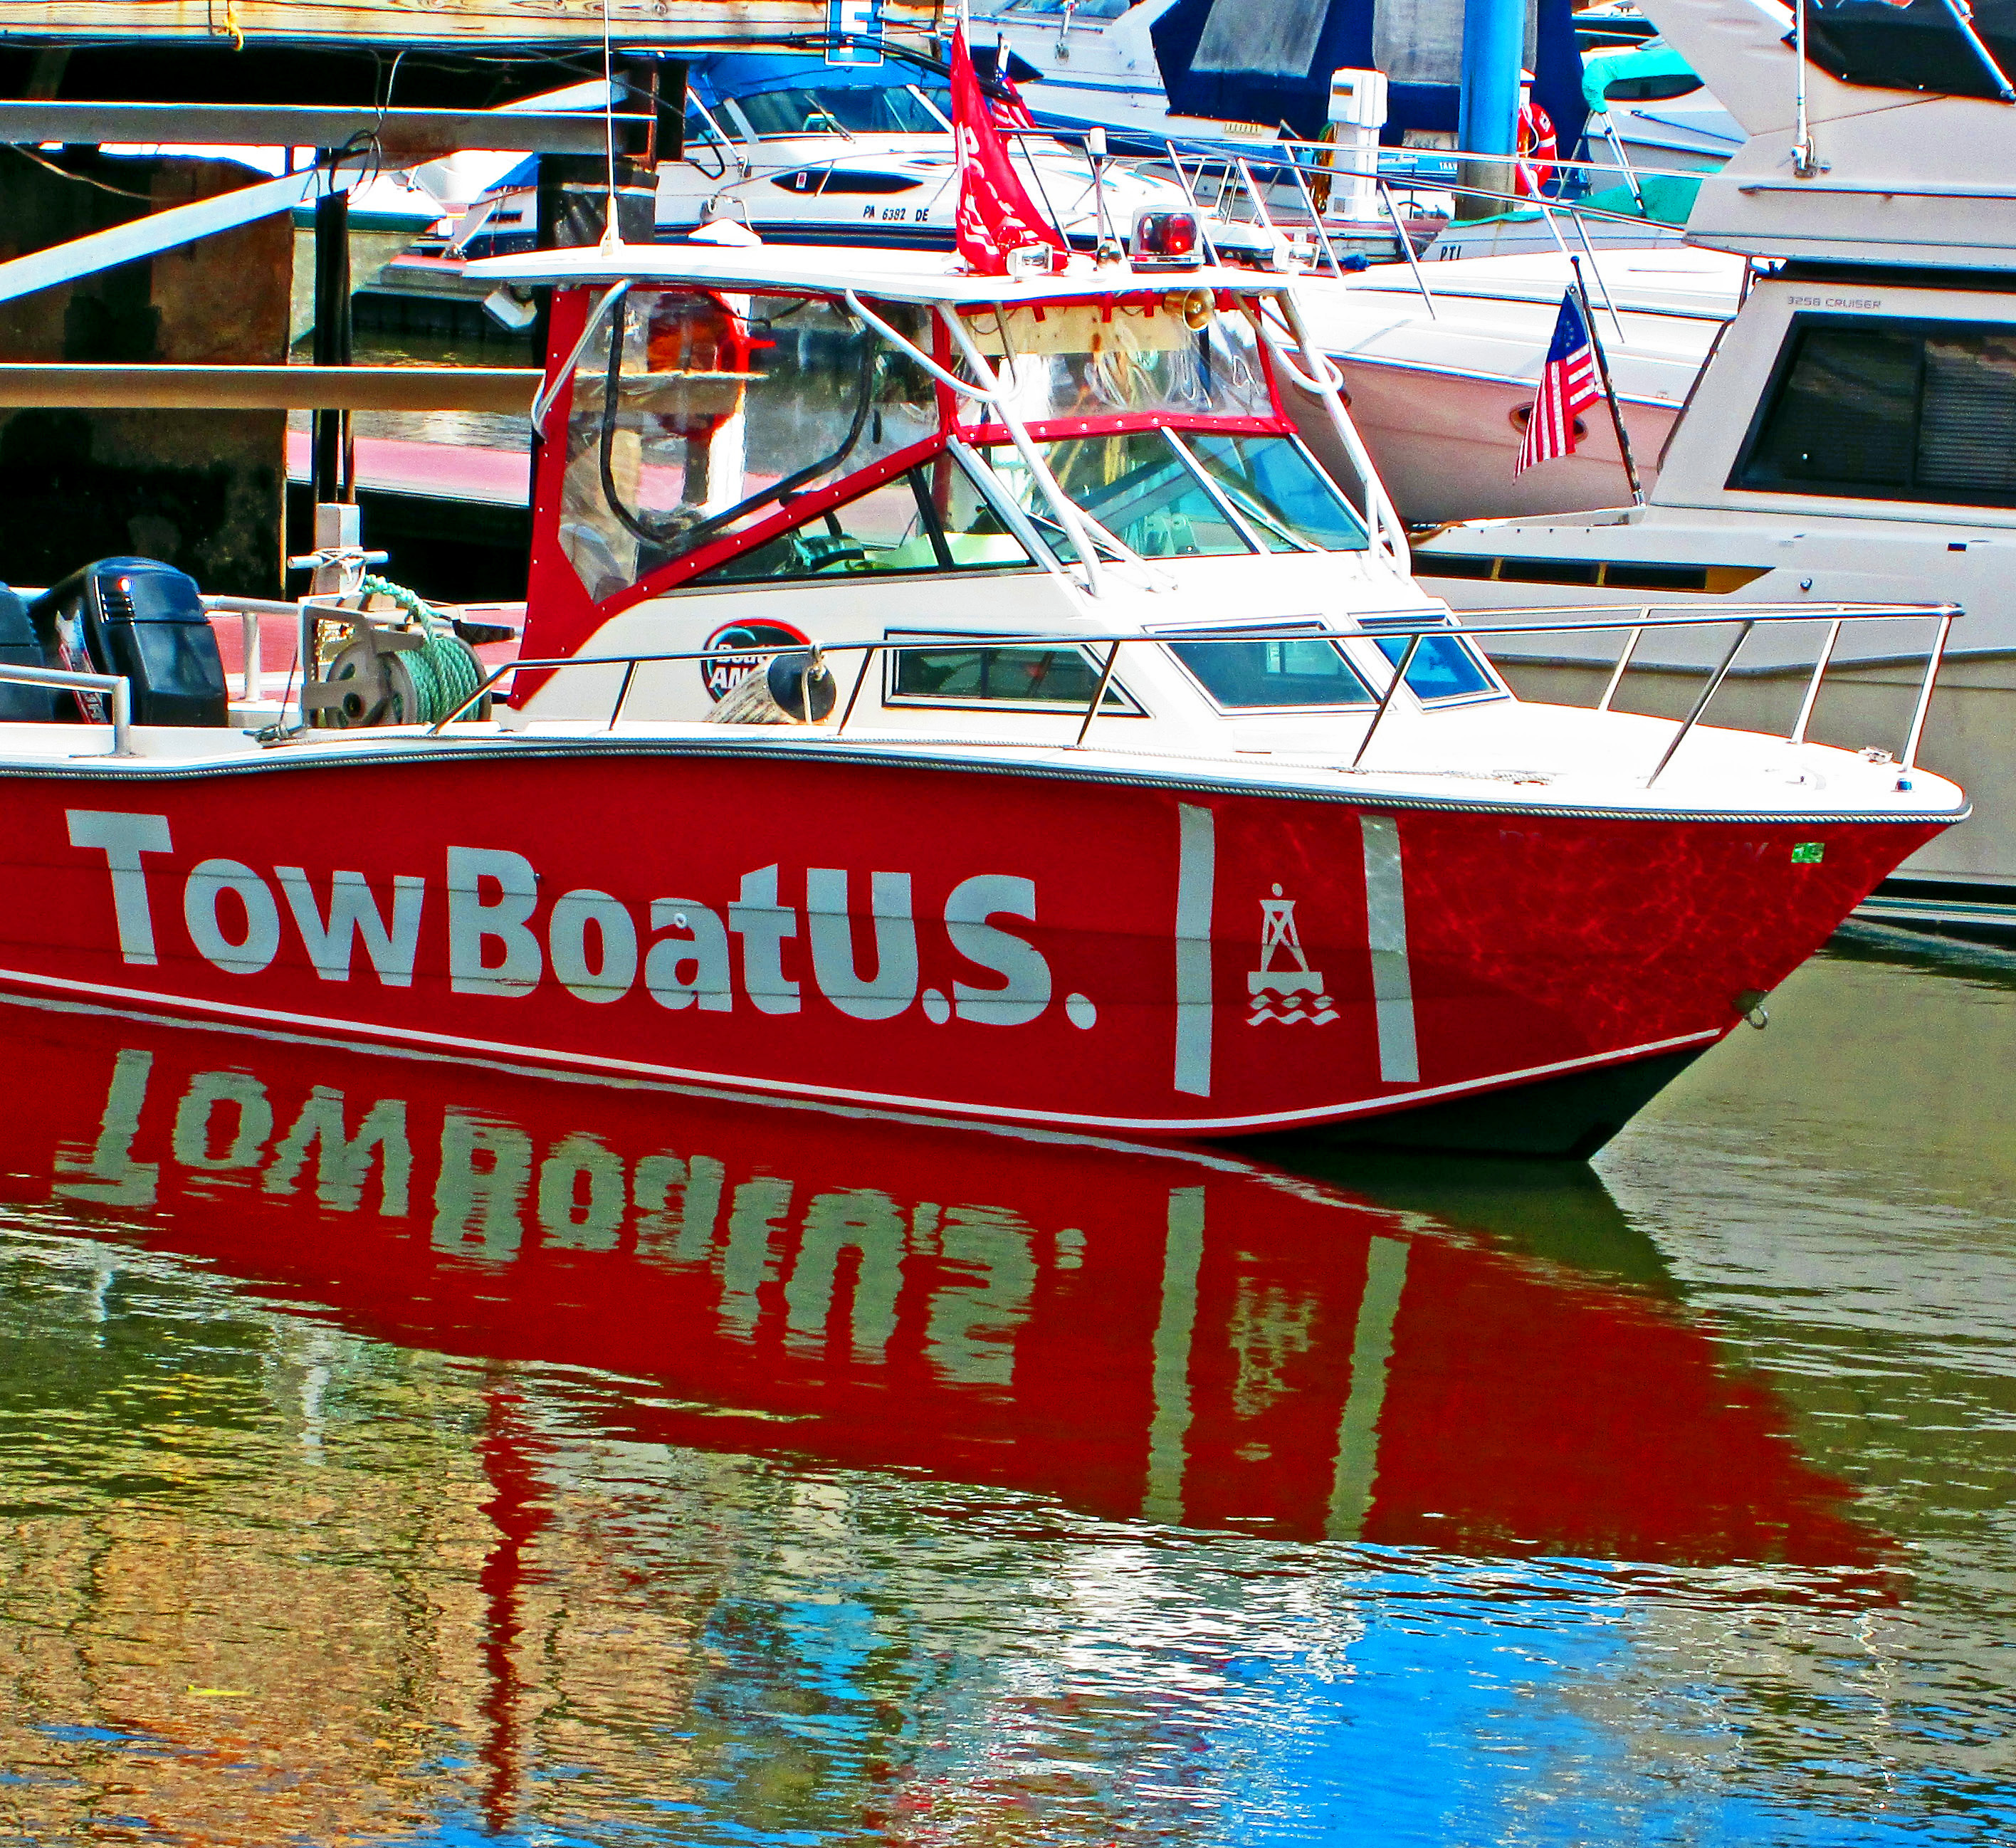 Philly Marina Tow Boat